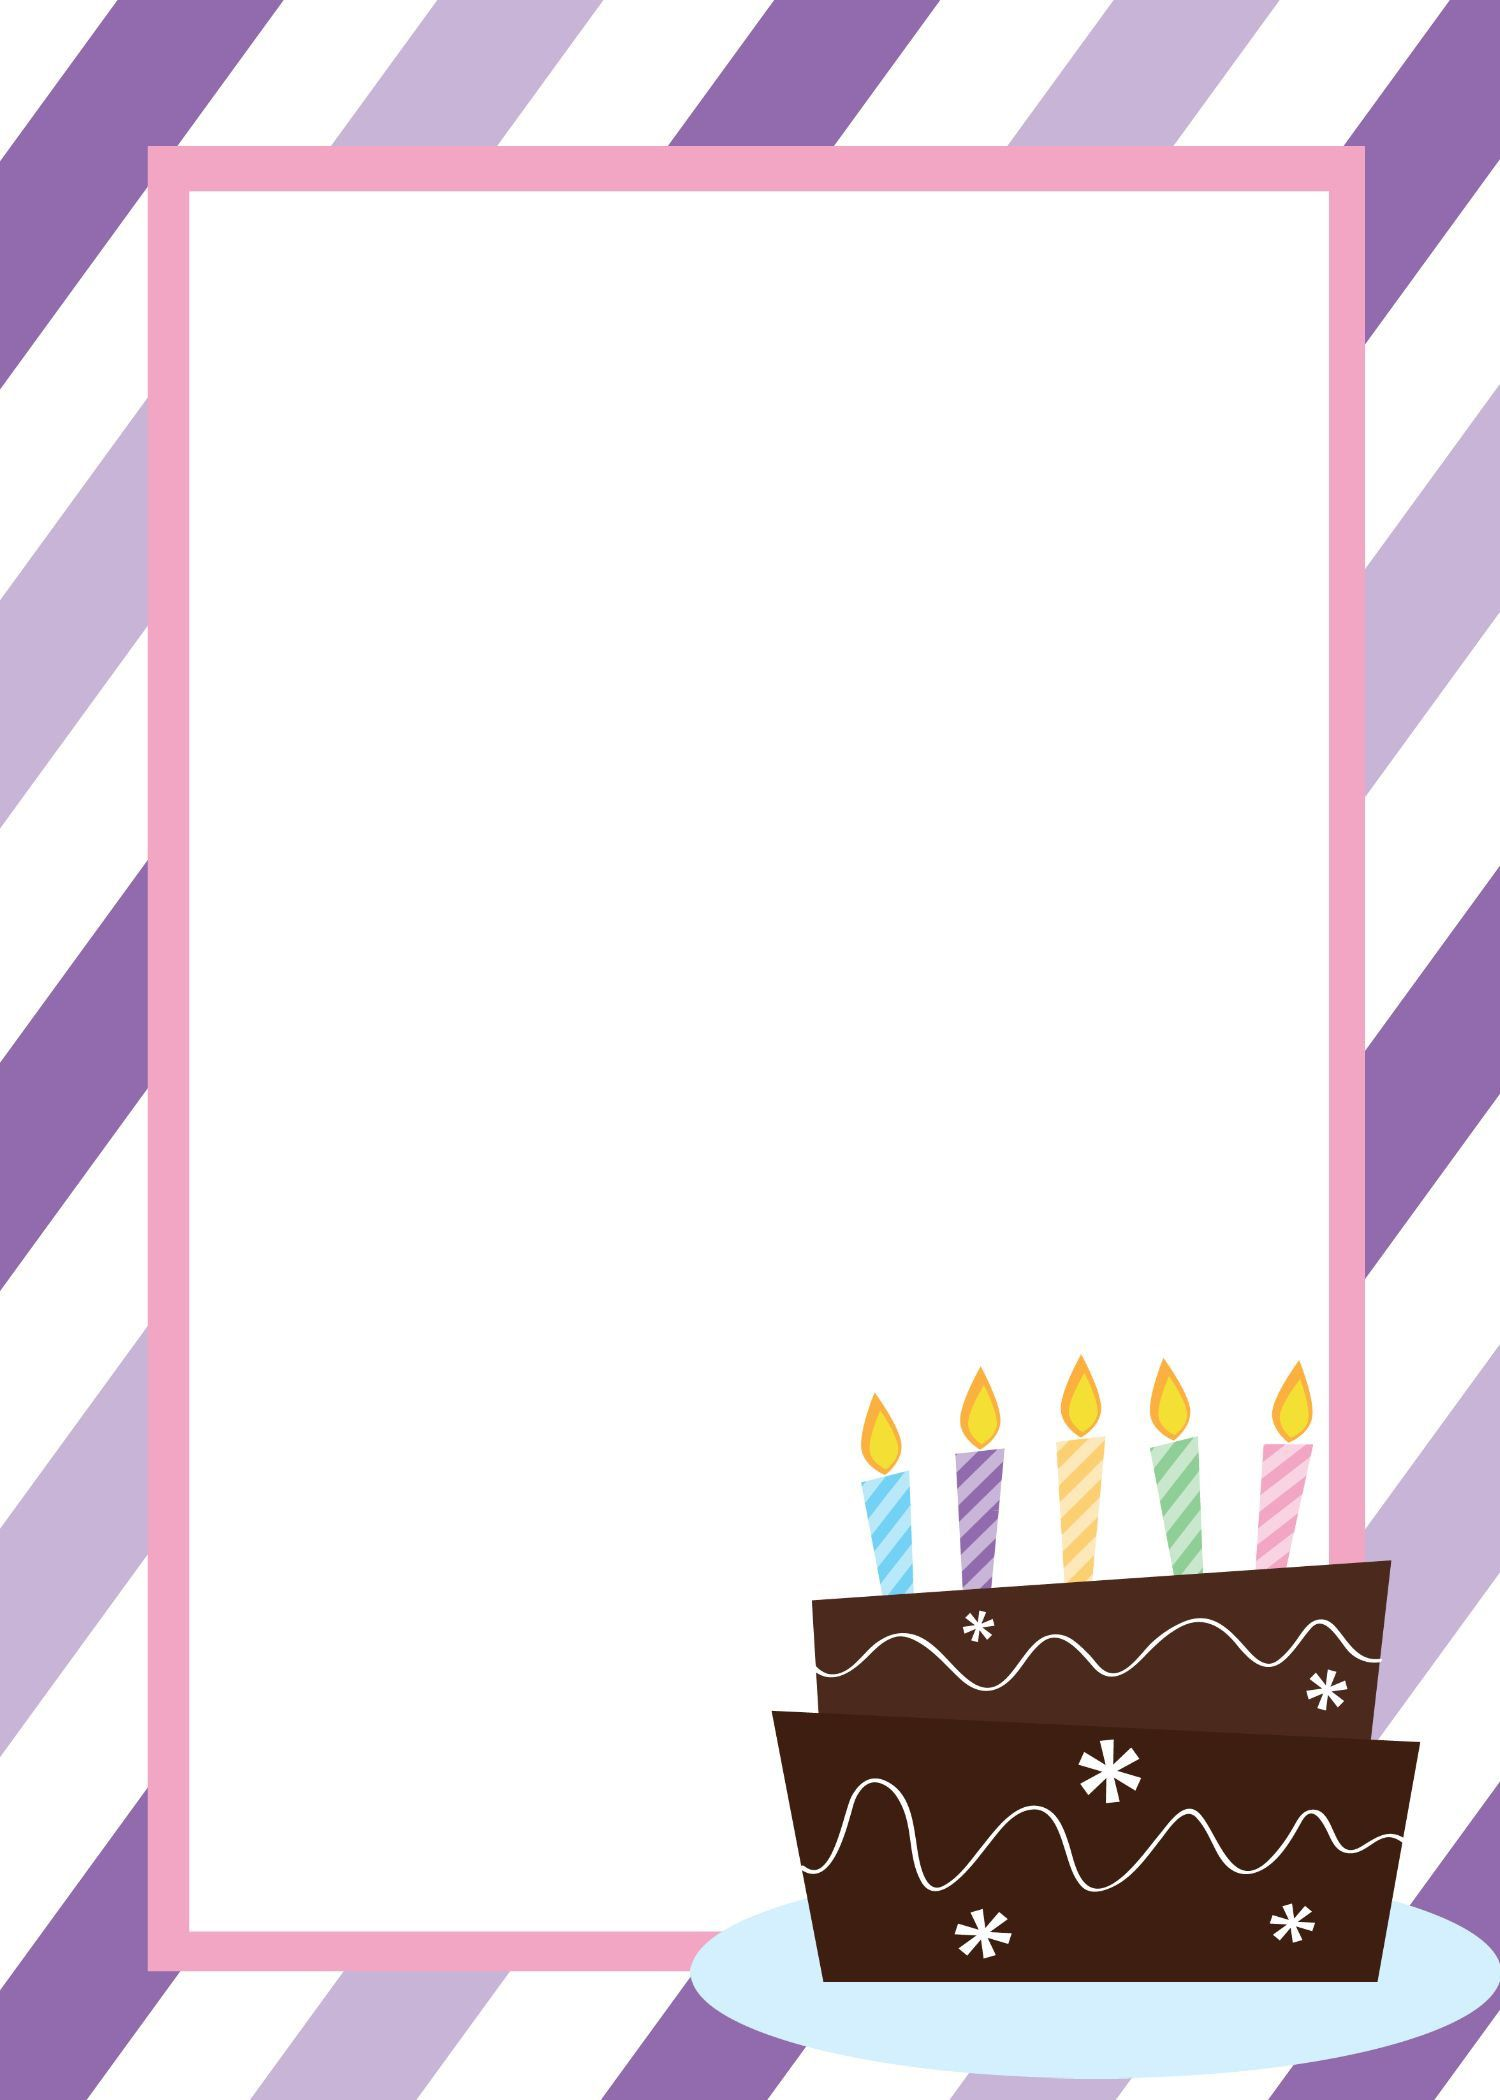 009 Remarkable Free Birthday Card Invitation Template Printable Highest Quality Full